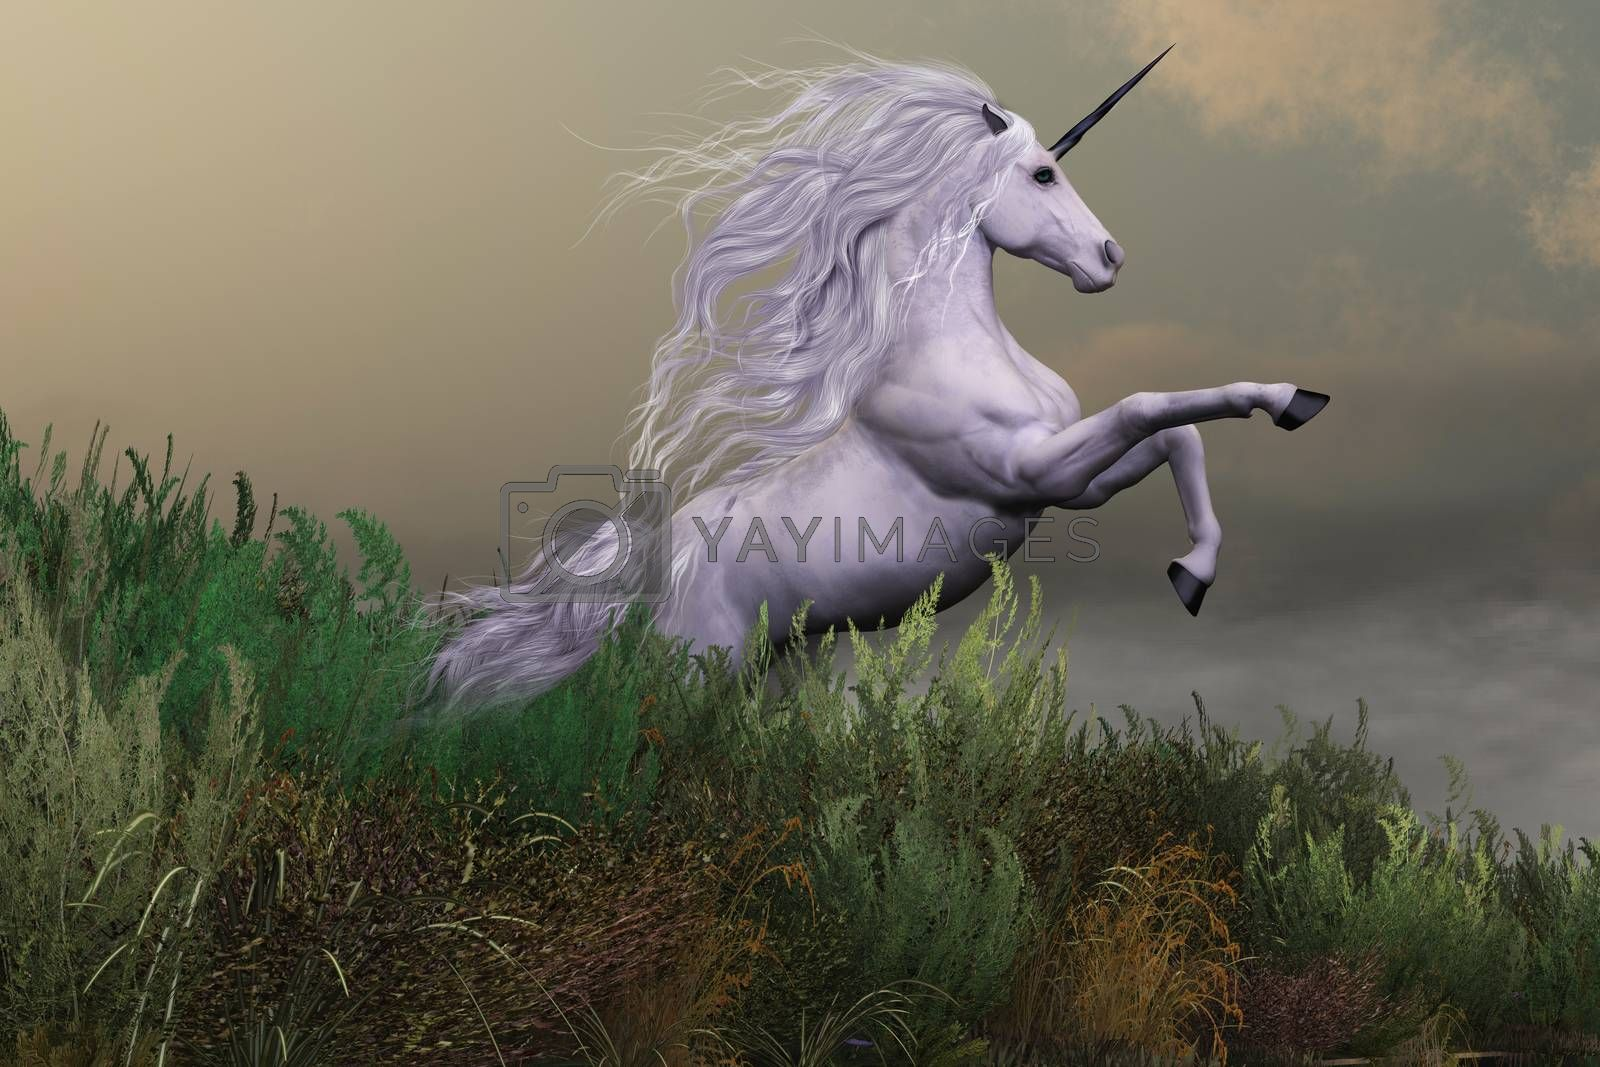 A white unicorn stallion rears up with power and majesty on a hilltop of a mountain range.